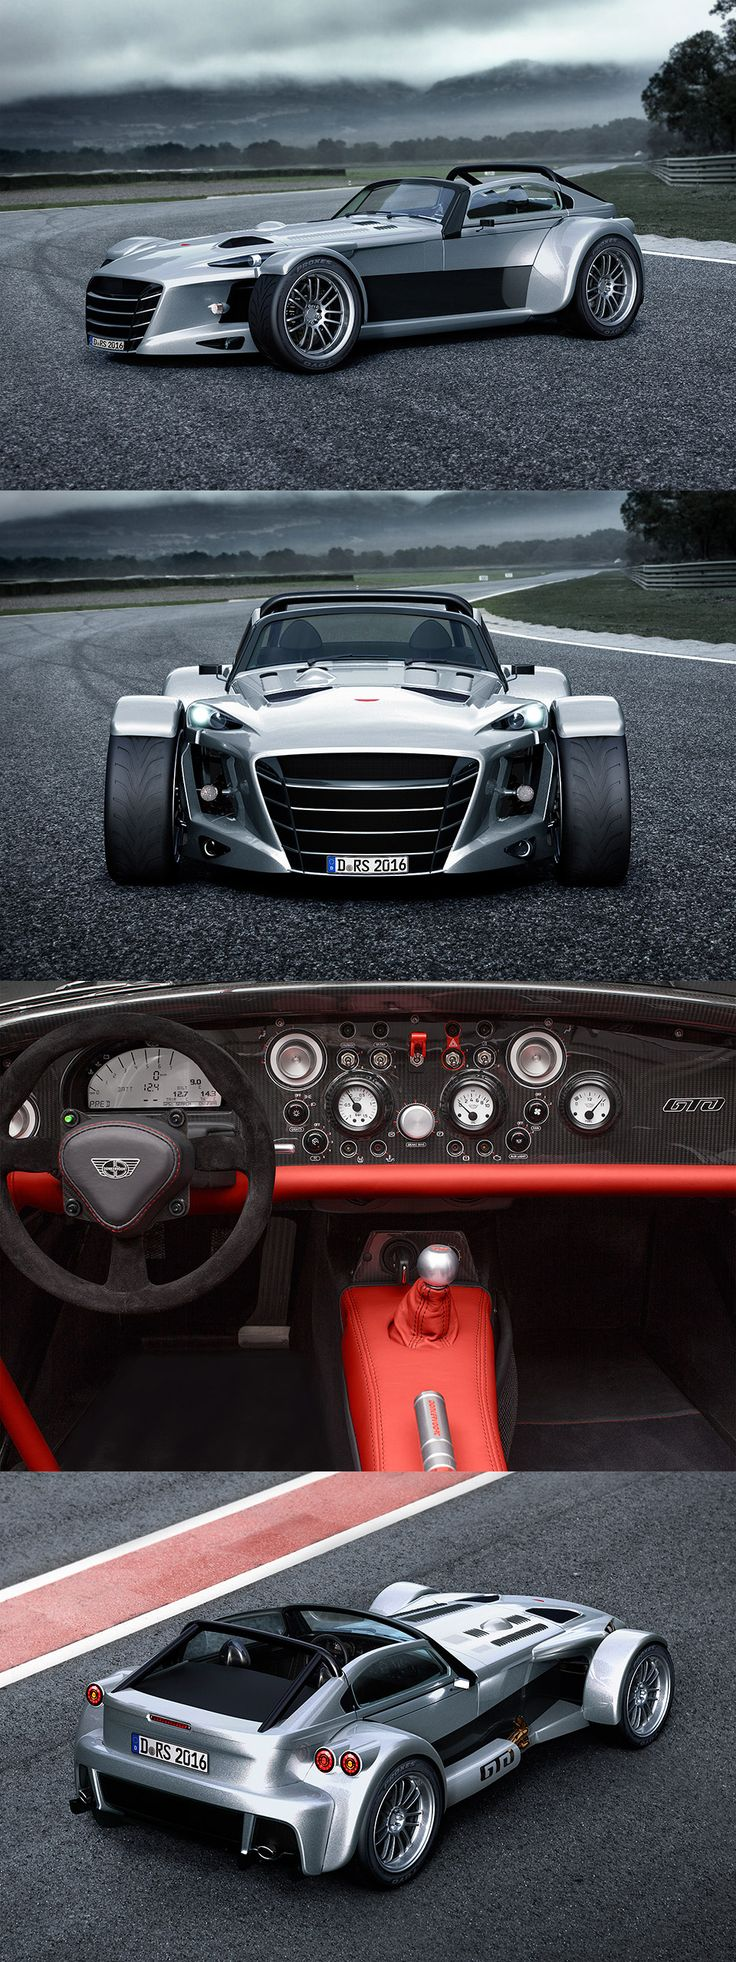 Donkervoort D8 GTO-RS https://www.amazon.co.uk/Baby-Car-Mirror-Shatterproof-Installation/dp/B06XHG6SSY